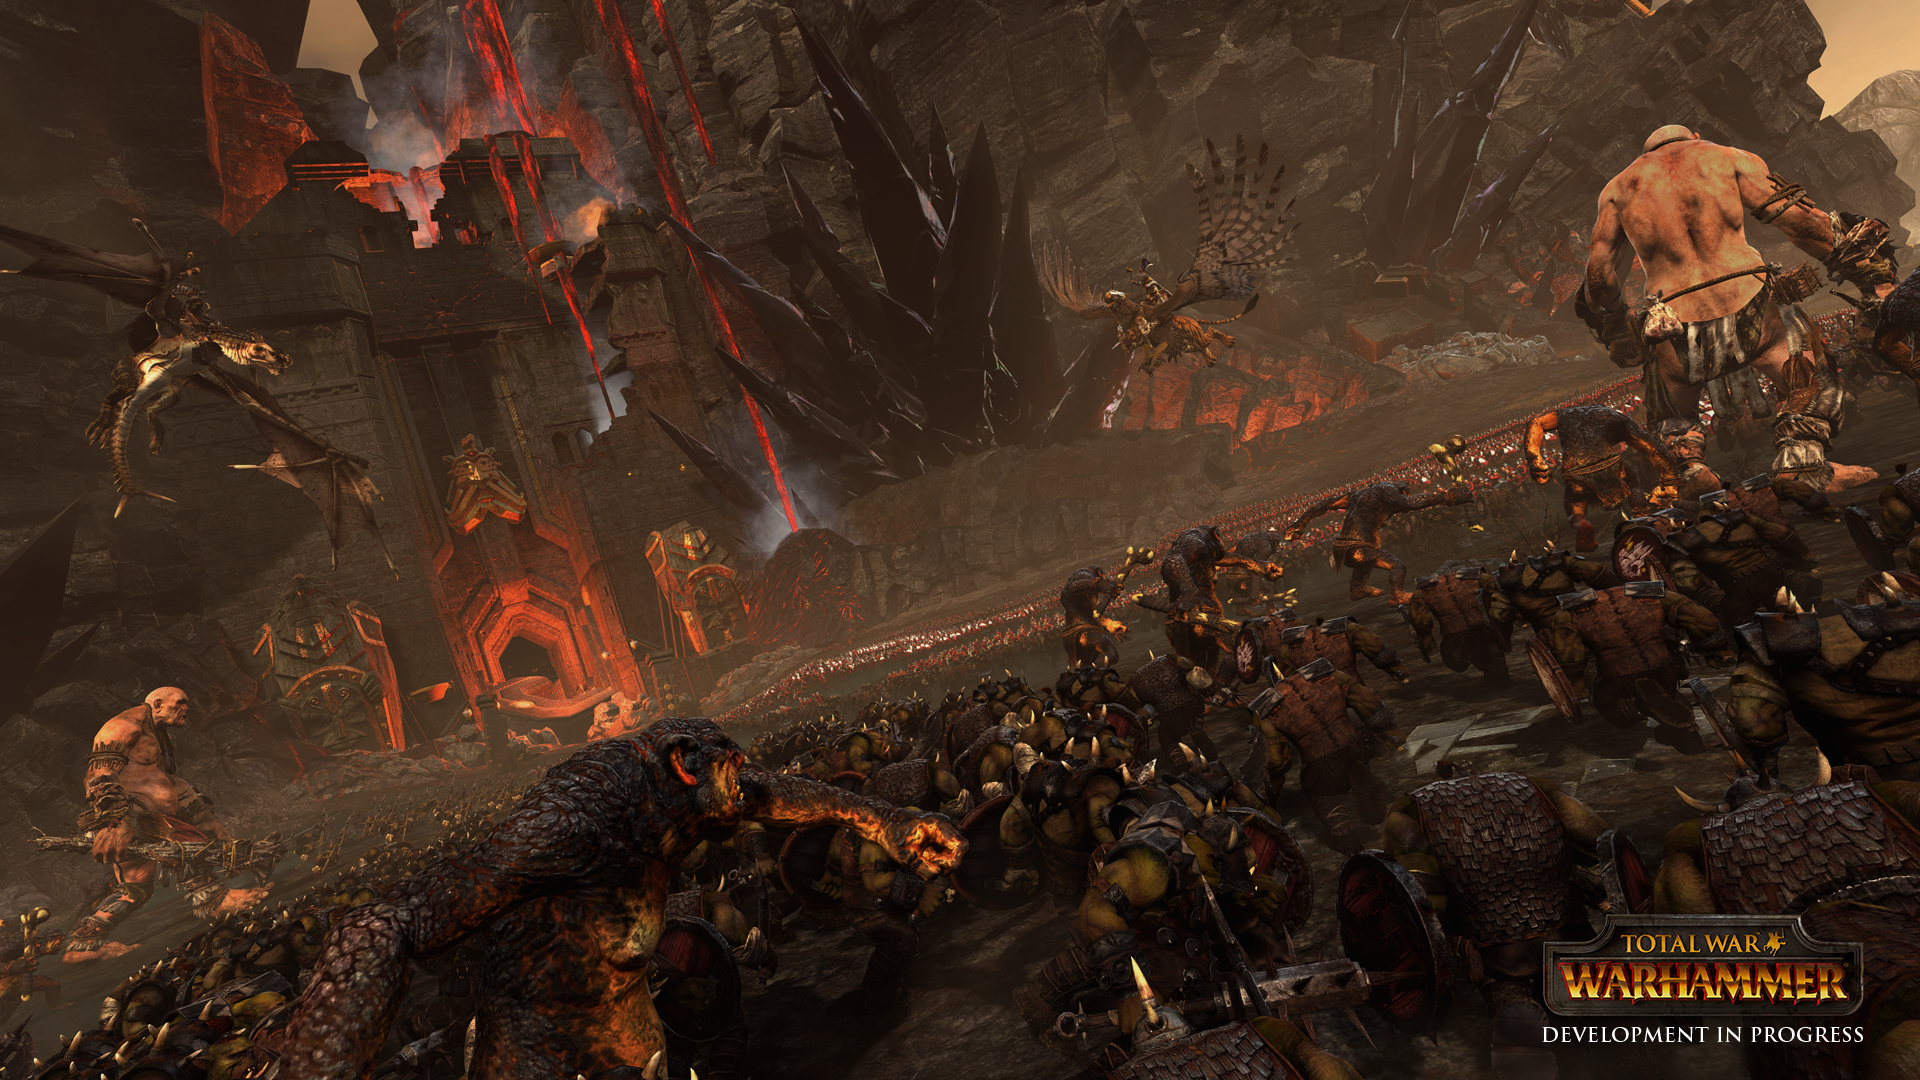 Warhammer Total War 2 Wallpaper 2560 X 1440 Dark Elves: Total War: Warhammer Wallpapers, Pictures, Images